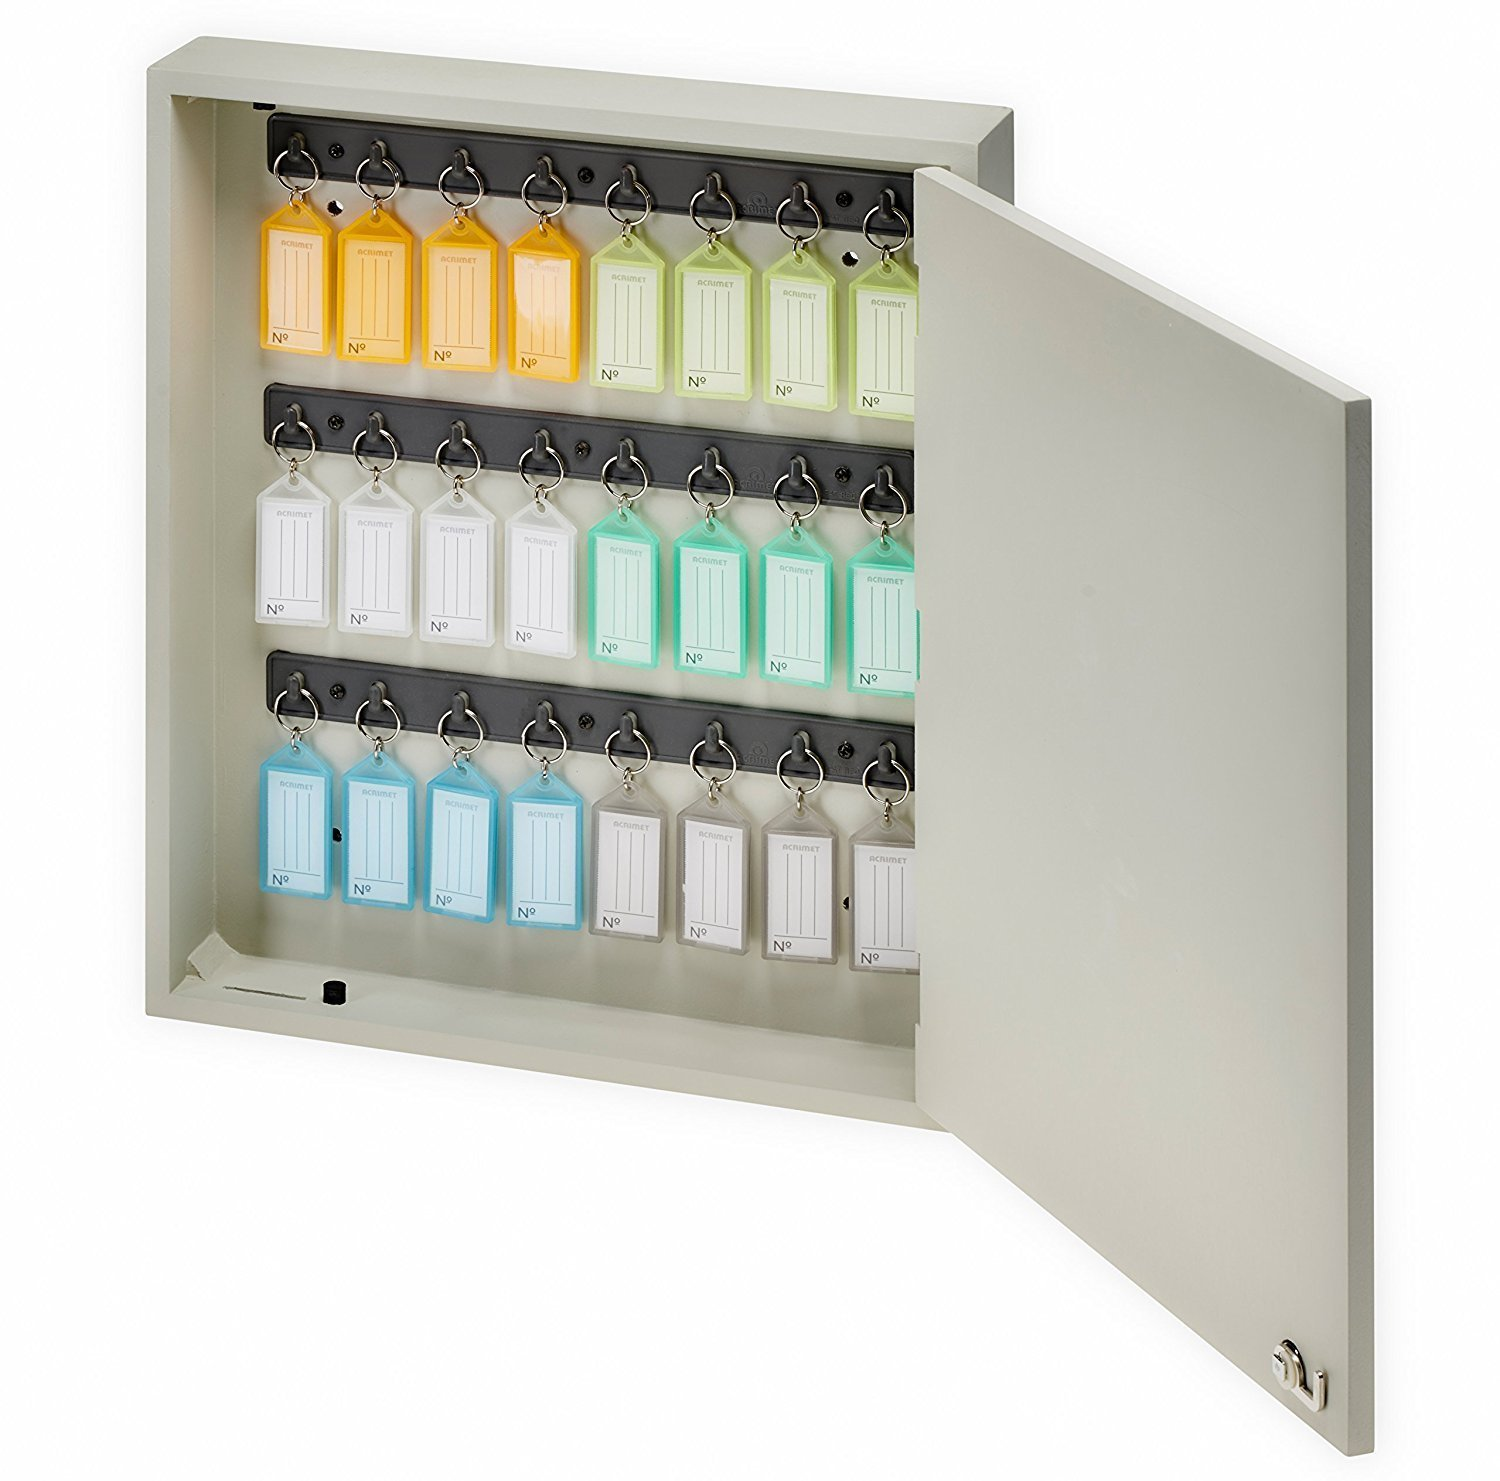 Acrimet Key Cabinet 24 Positions with 24 Key Tags (Beige Color) 161.0 Areia/Sortidos